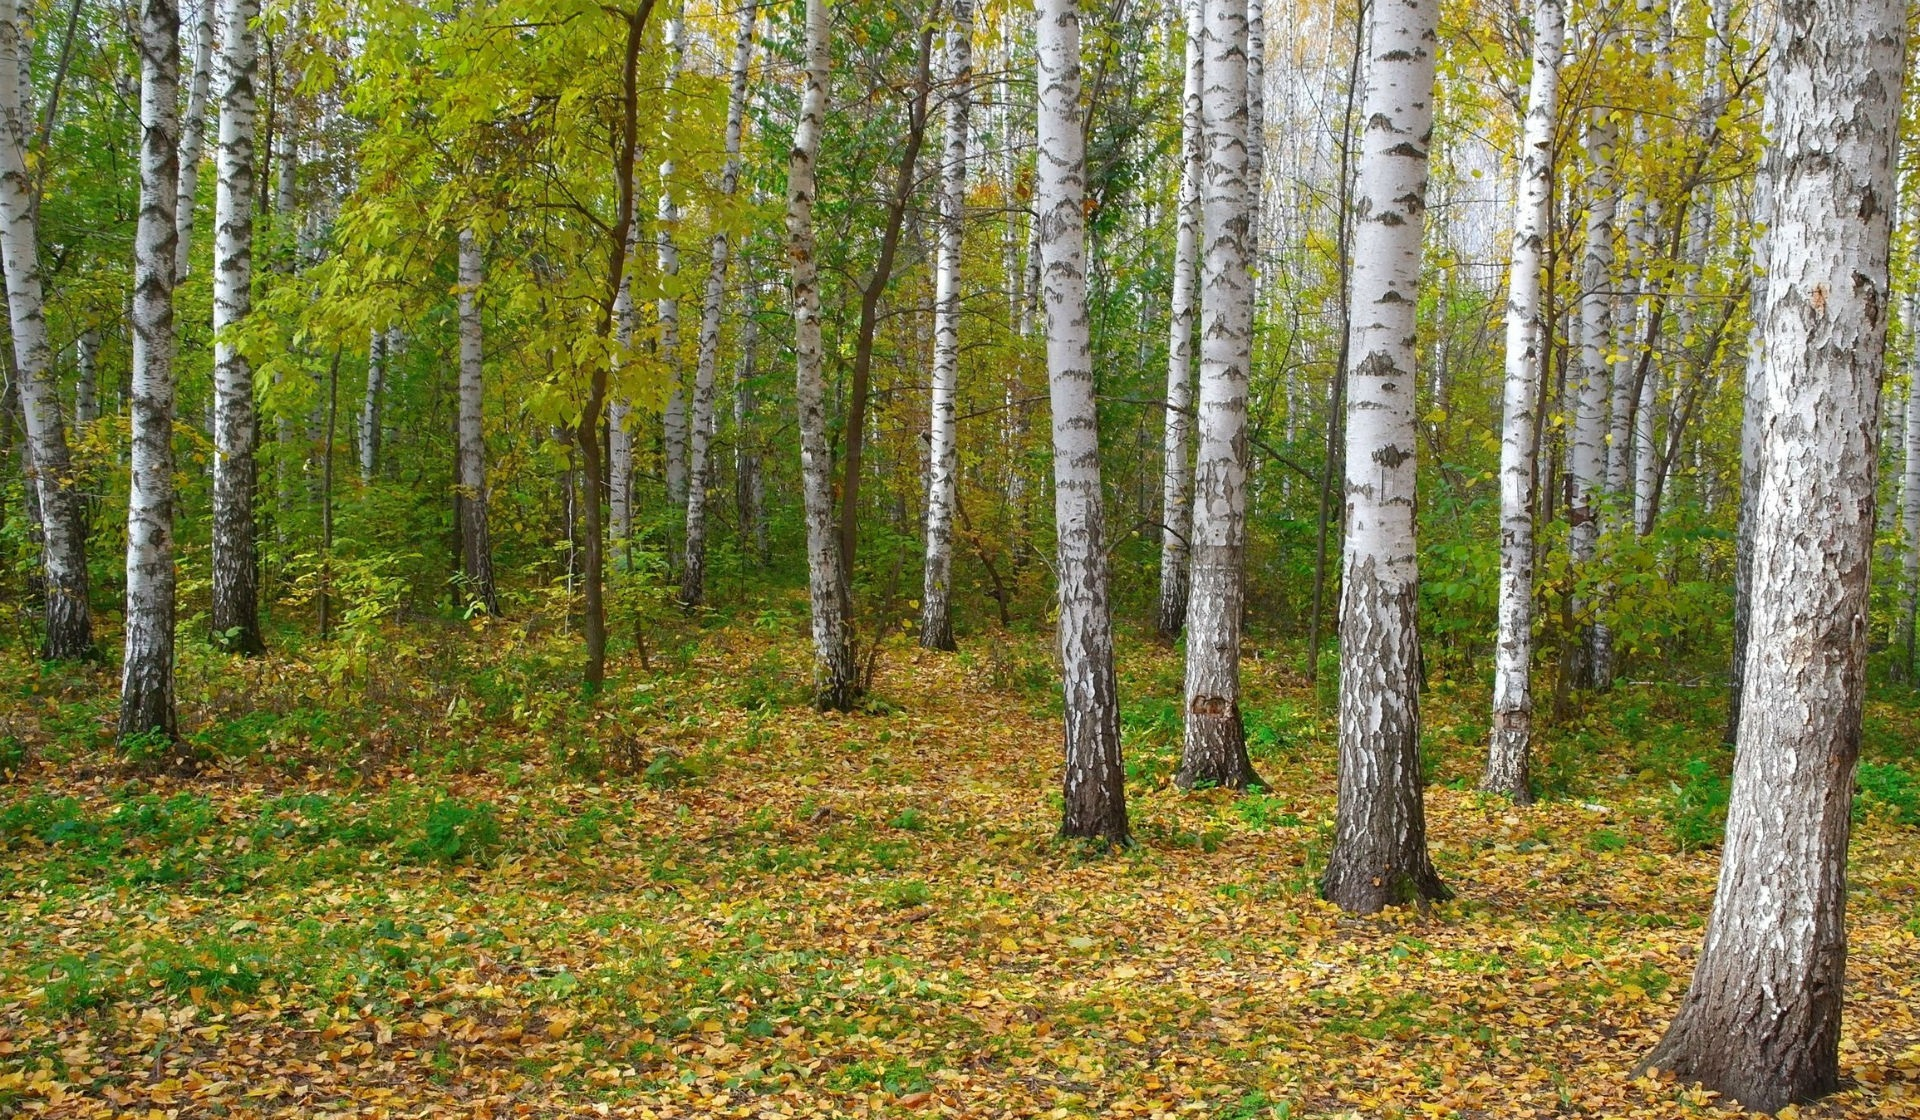 pic of forest in autumn